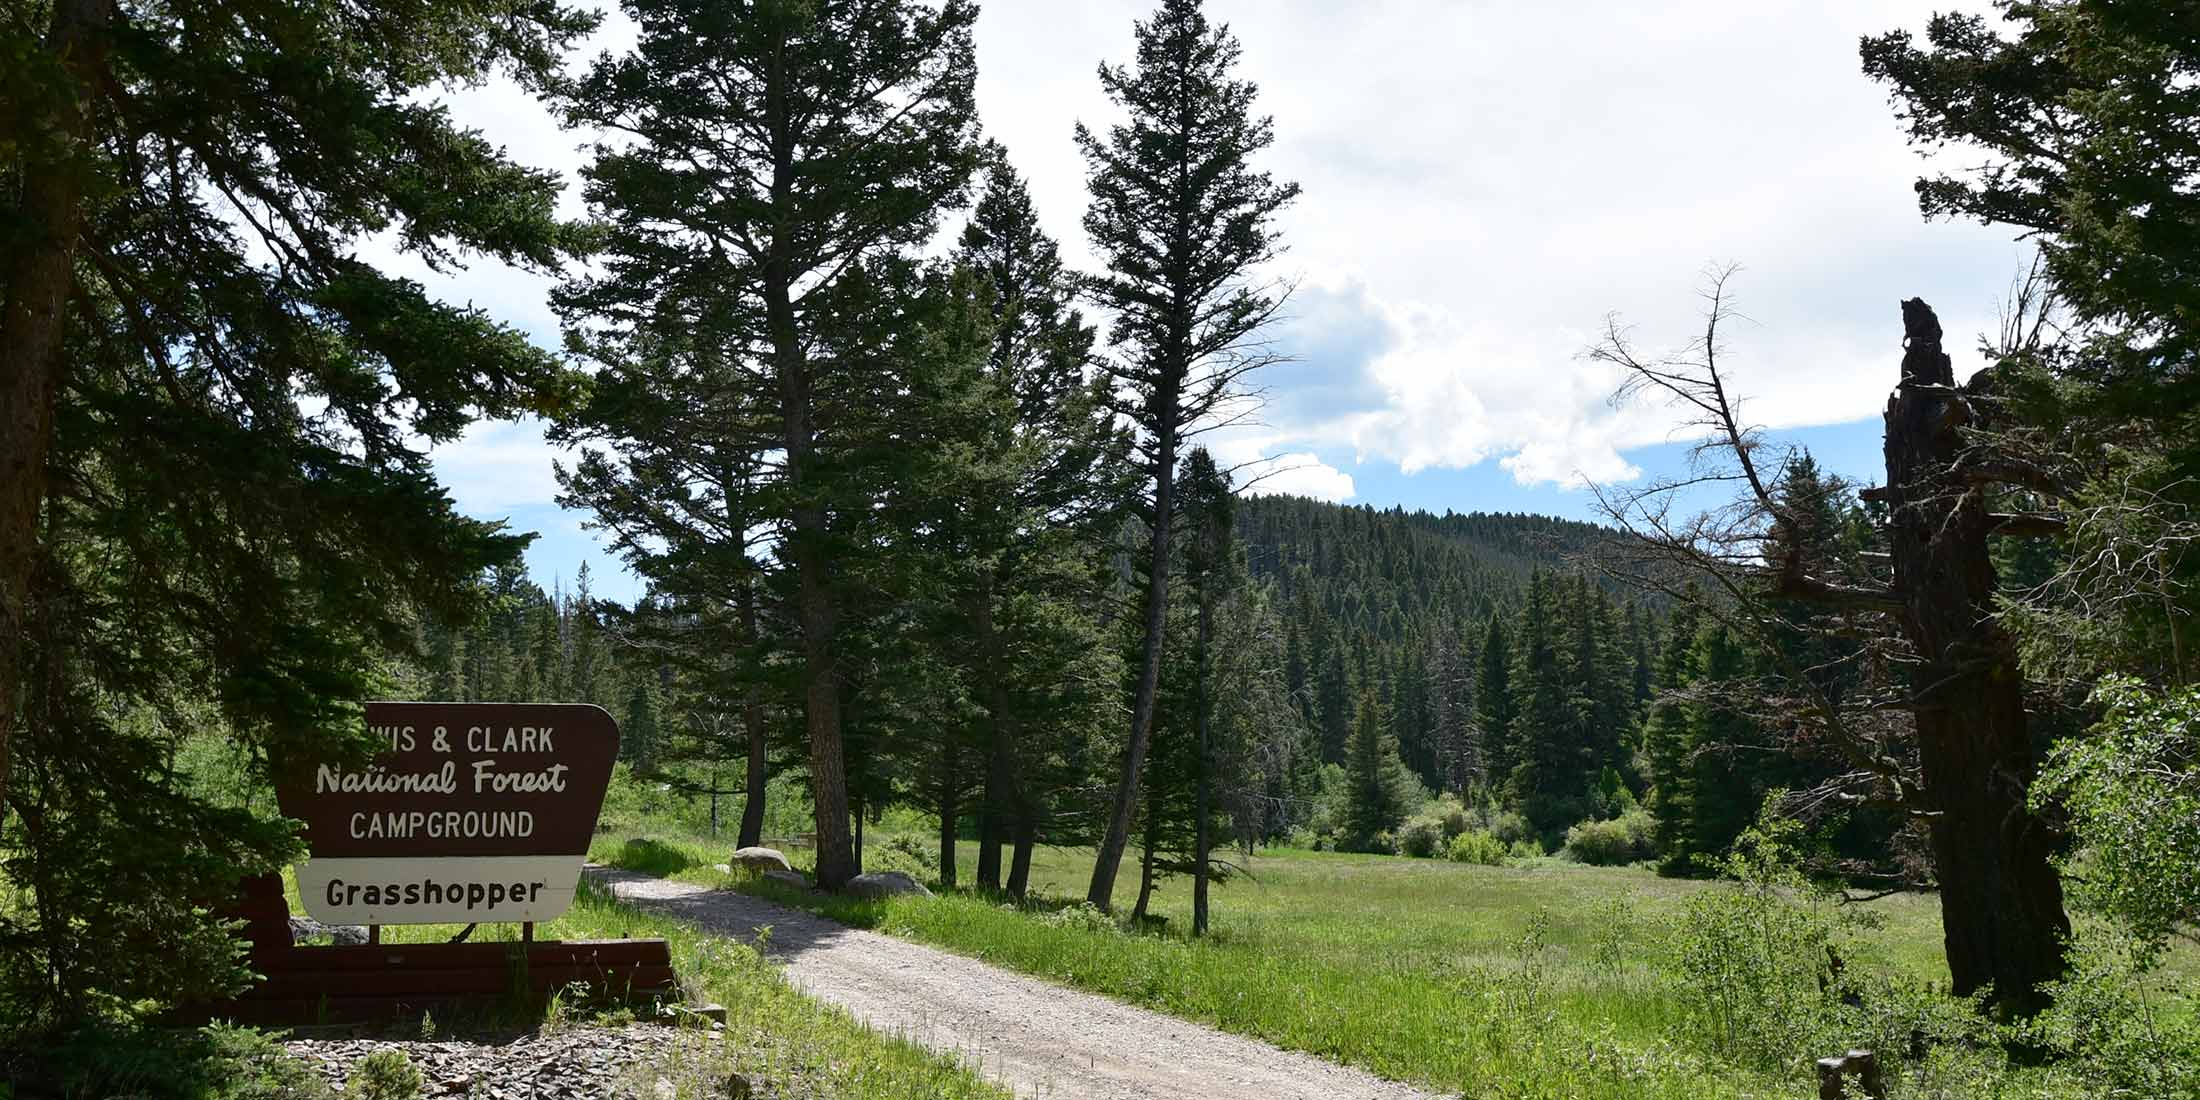 Information about Grasshopper Creek Campground located in the Castle Mountain Range, Montana.